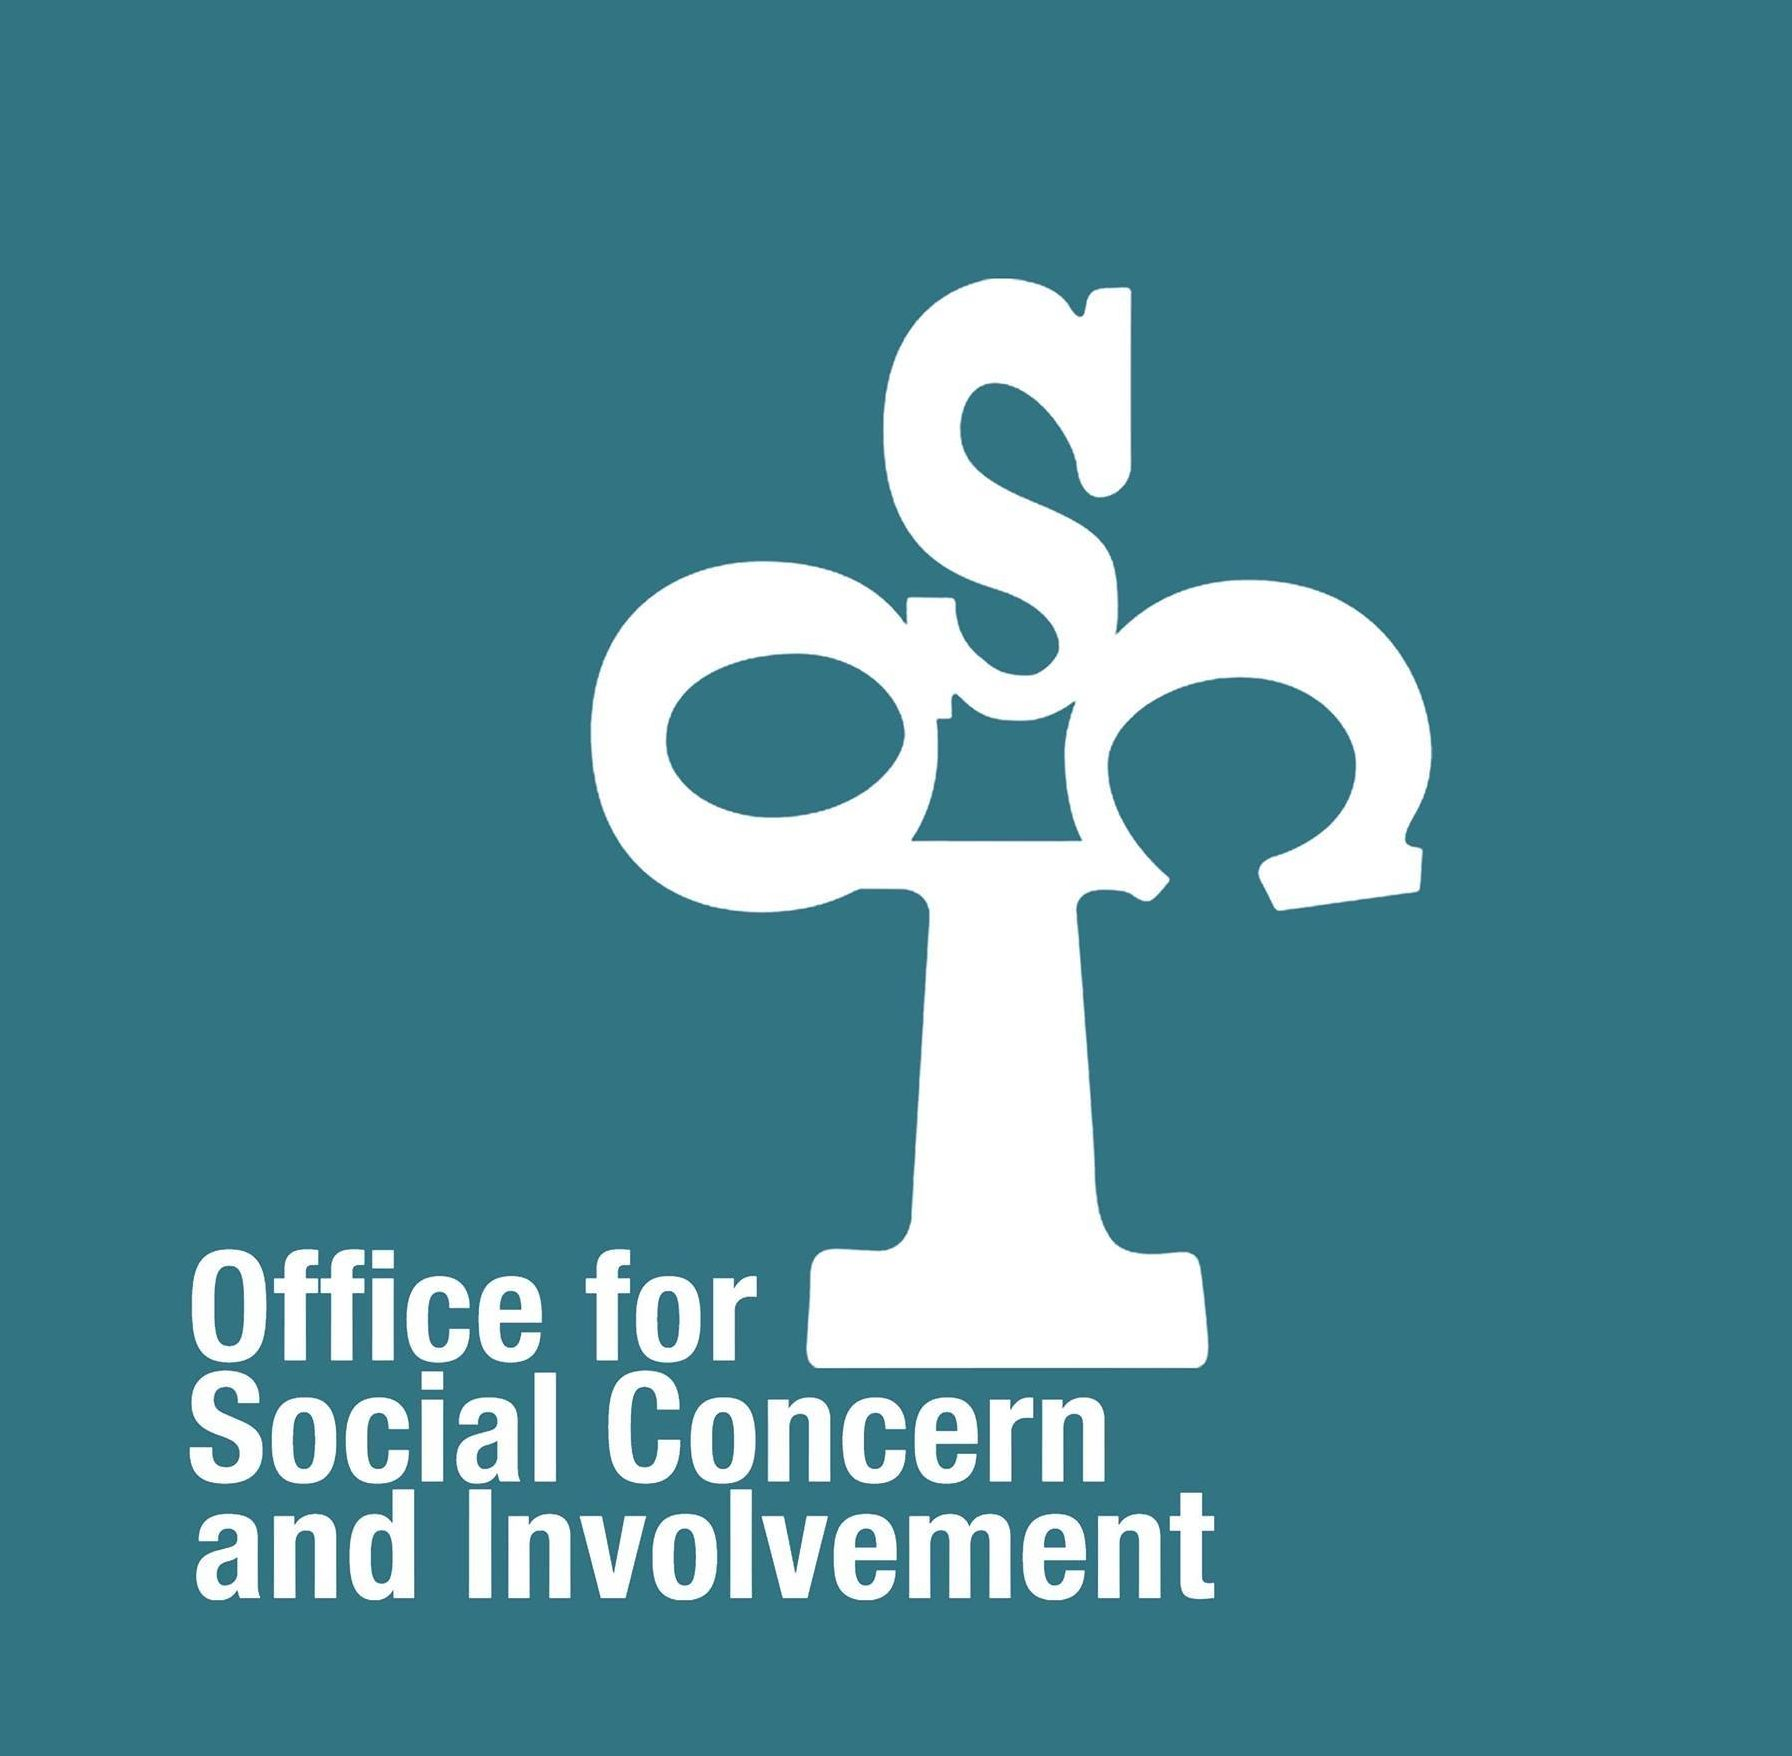 Ateneo Office for Social Concern and Involvement